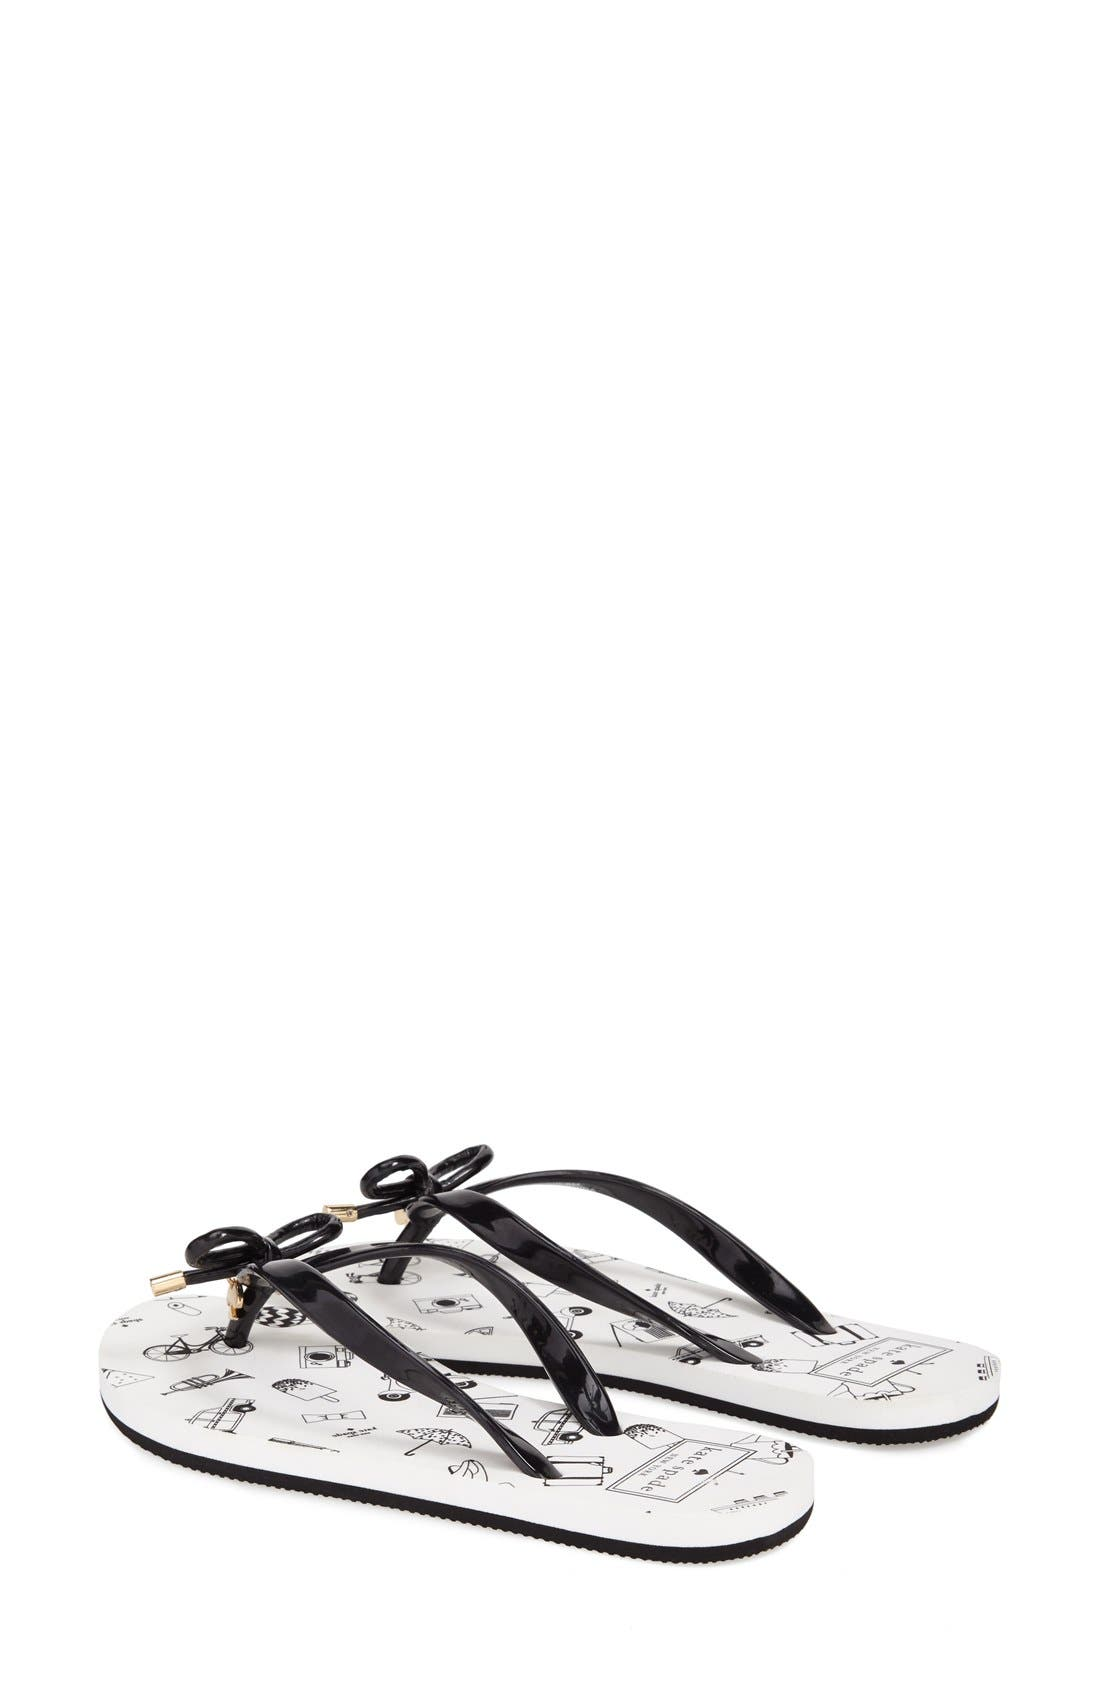 Alternate Image 2  - kate spade new york 'nova' flip flop (Women)